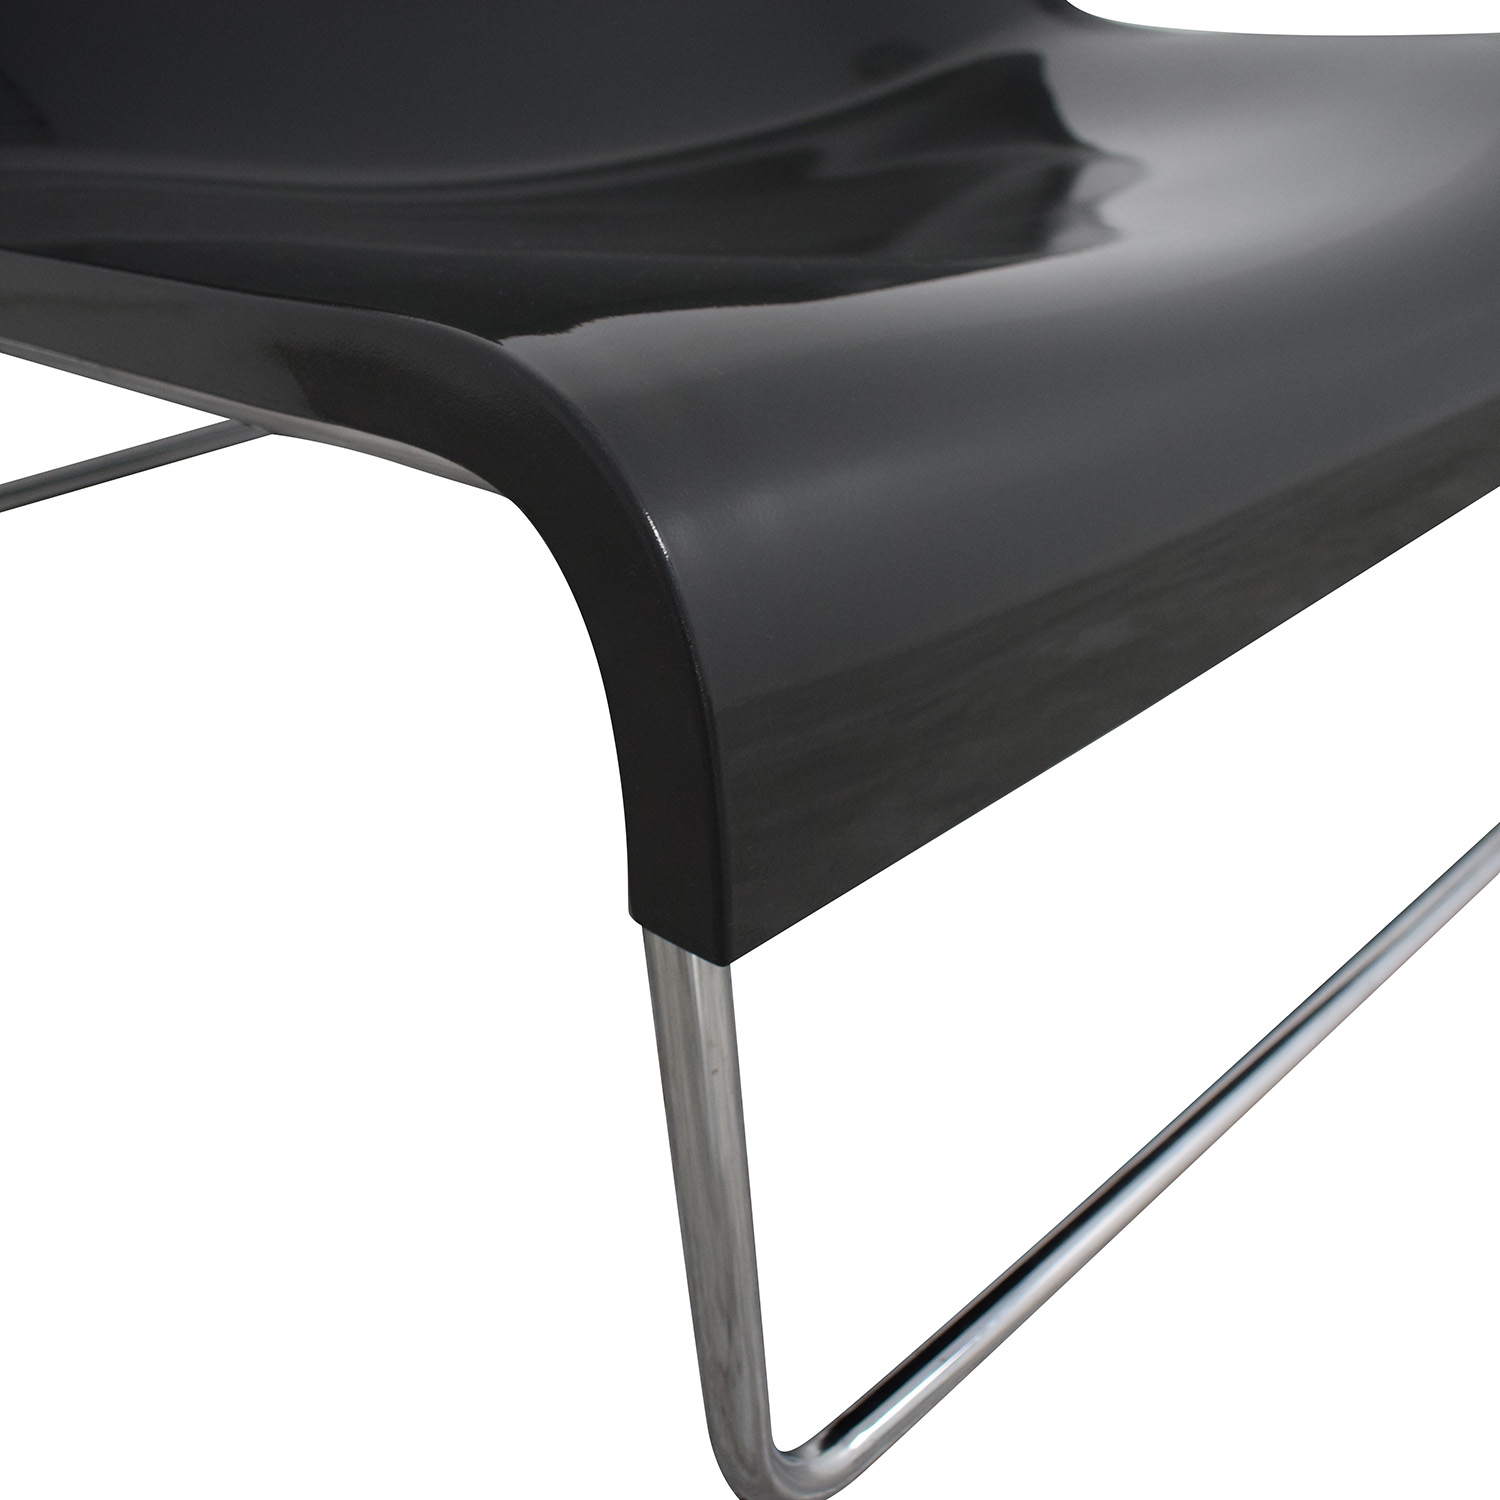 Kartell Kartell Form Lounge Chair by Piero Lissoni dimensions